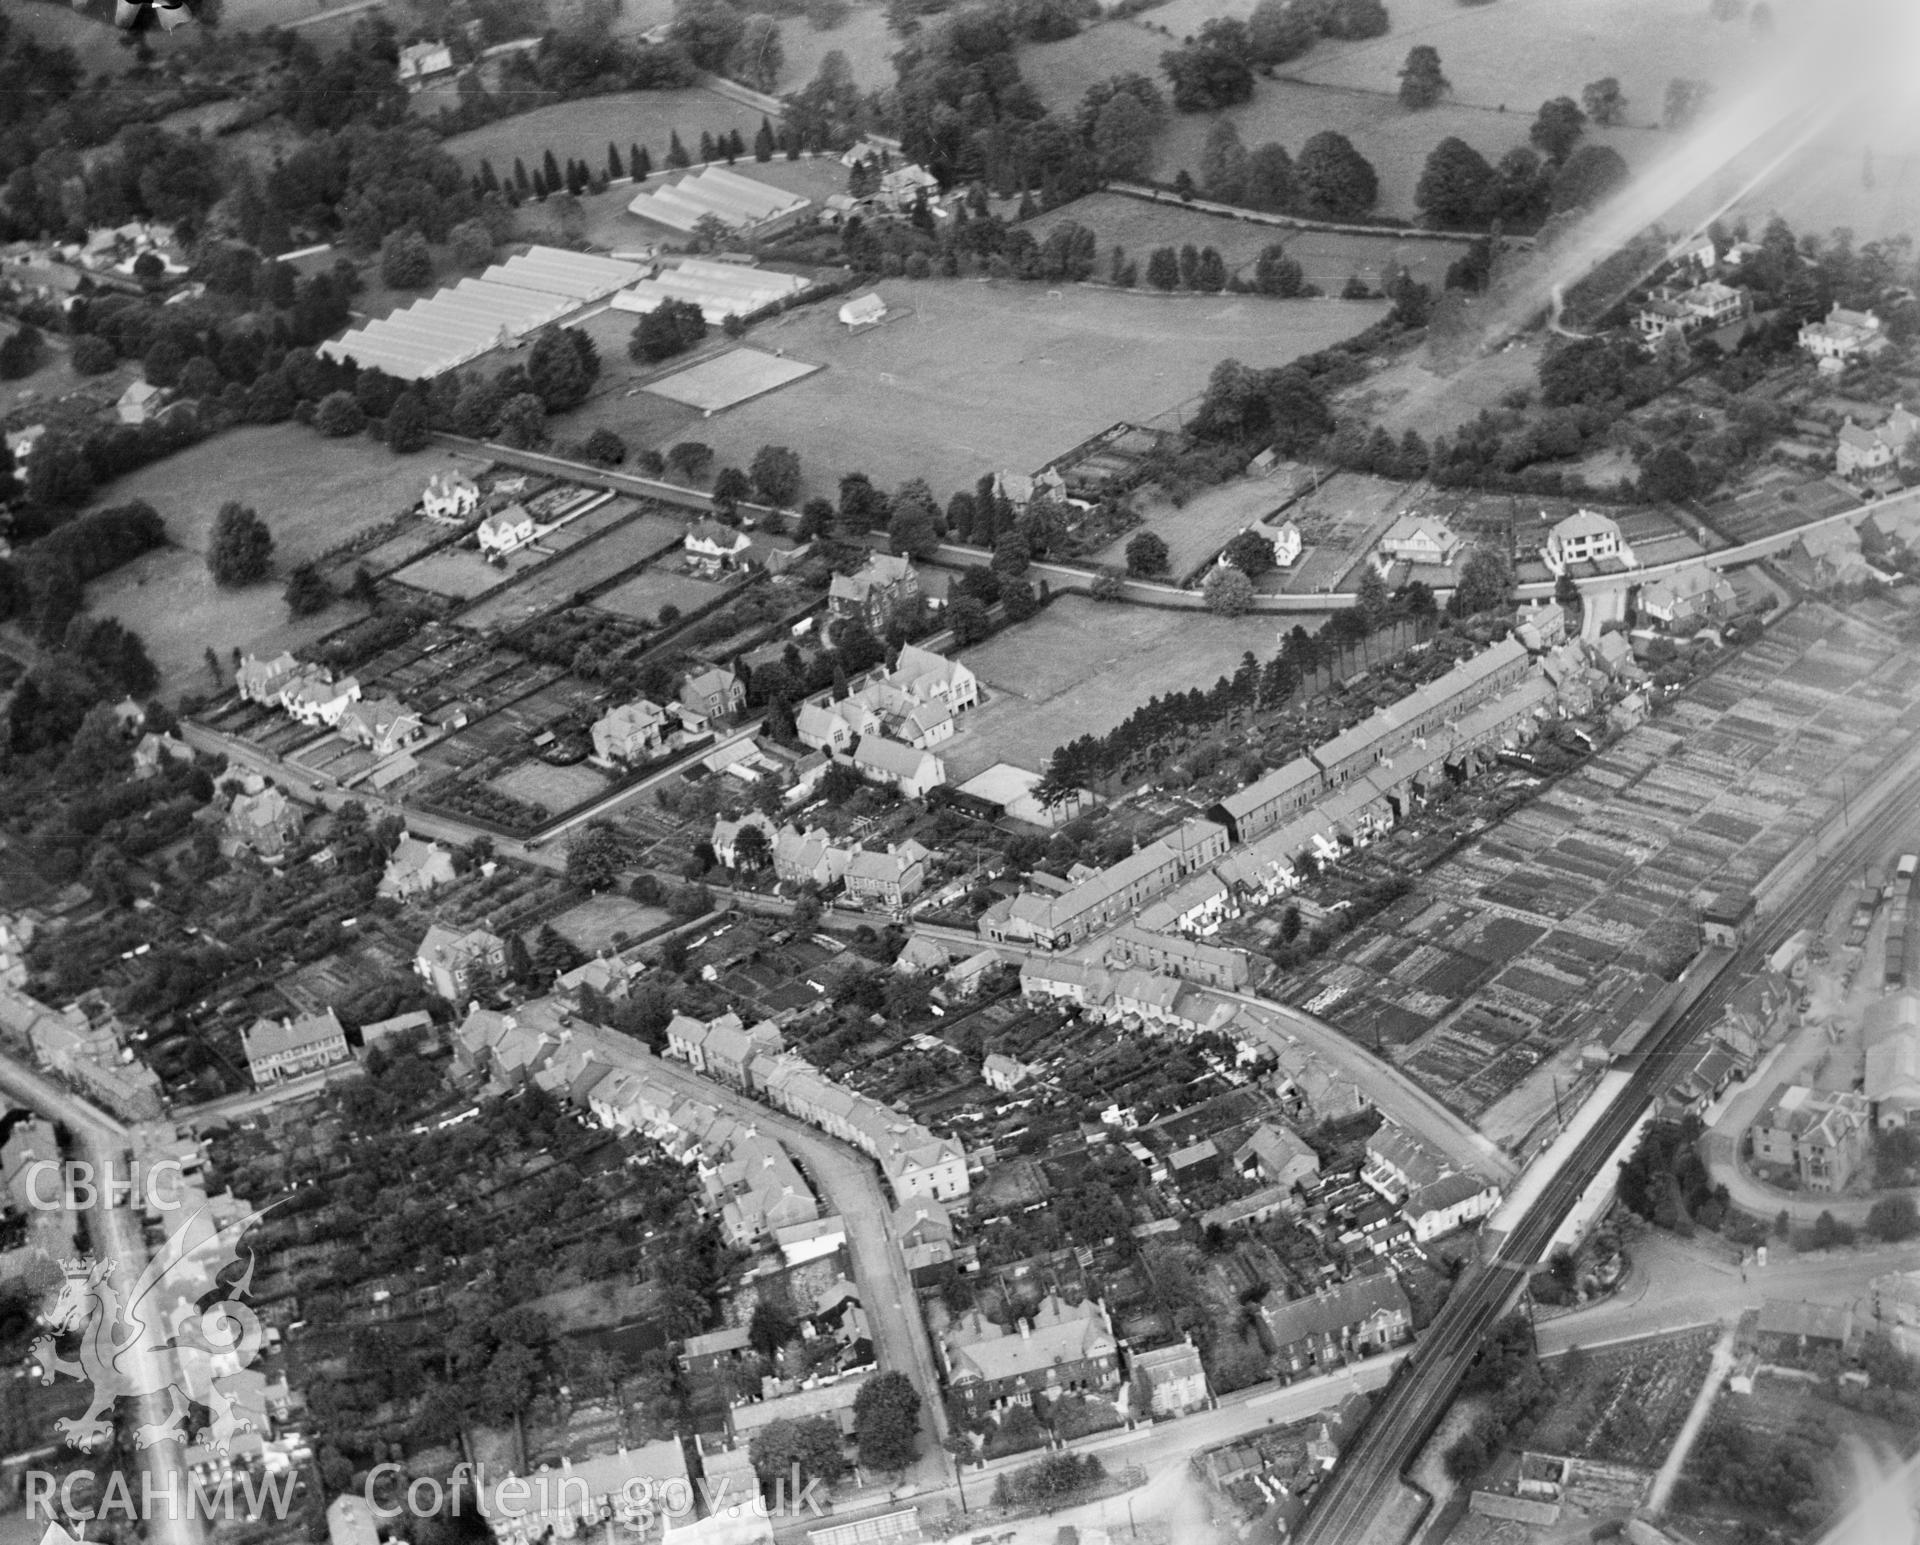 General view of Abergavenny, oblique aerial view. 5?x4? black and white glass plate negative.